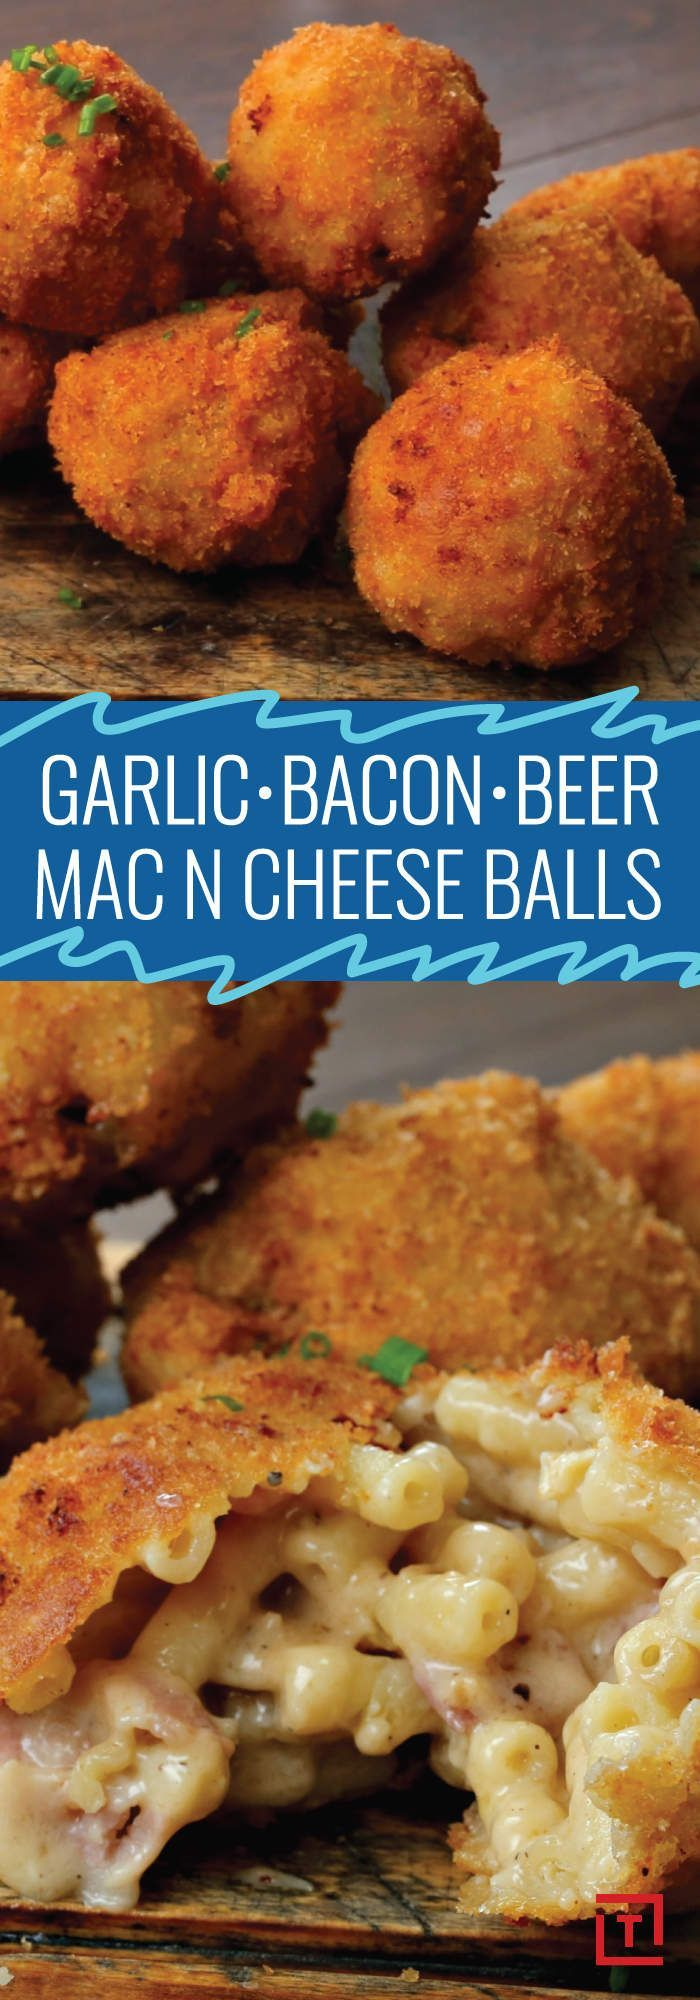 Garlic lovers and beer enthusiasts rejoice: these garlic, bacon, and beer mac & cheese balls are your new favorite snack.